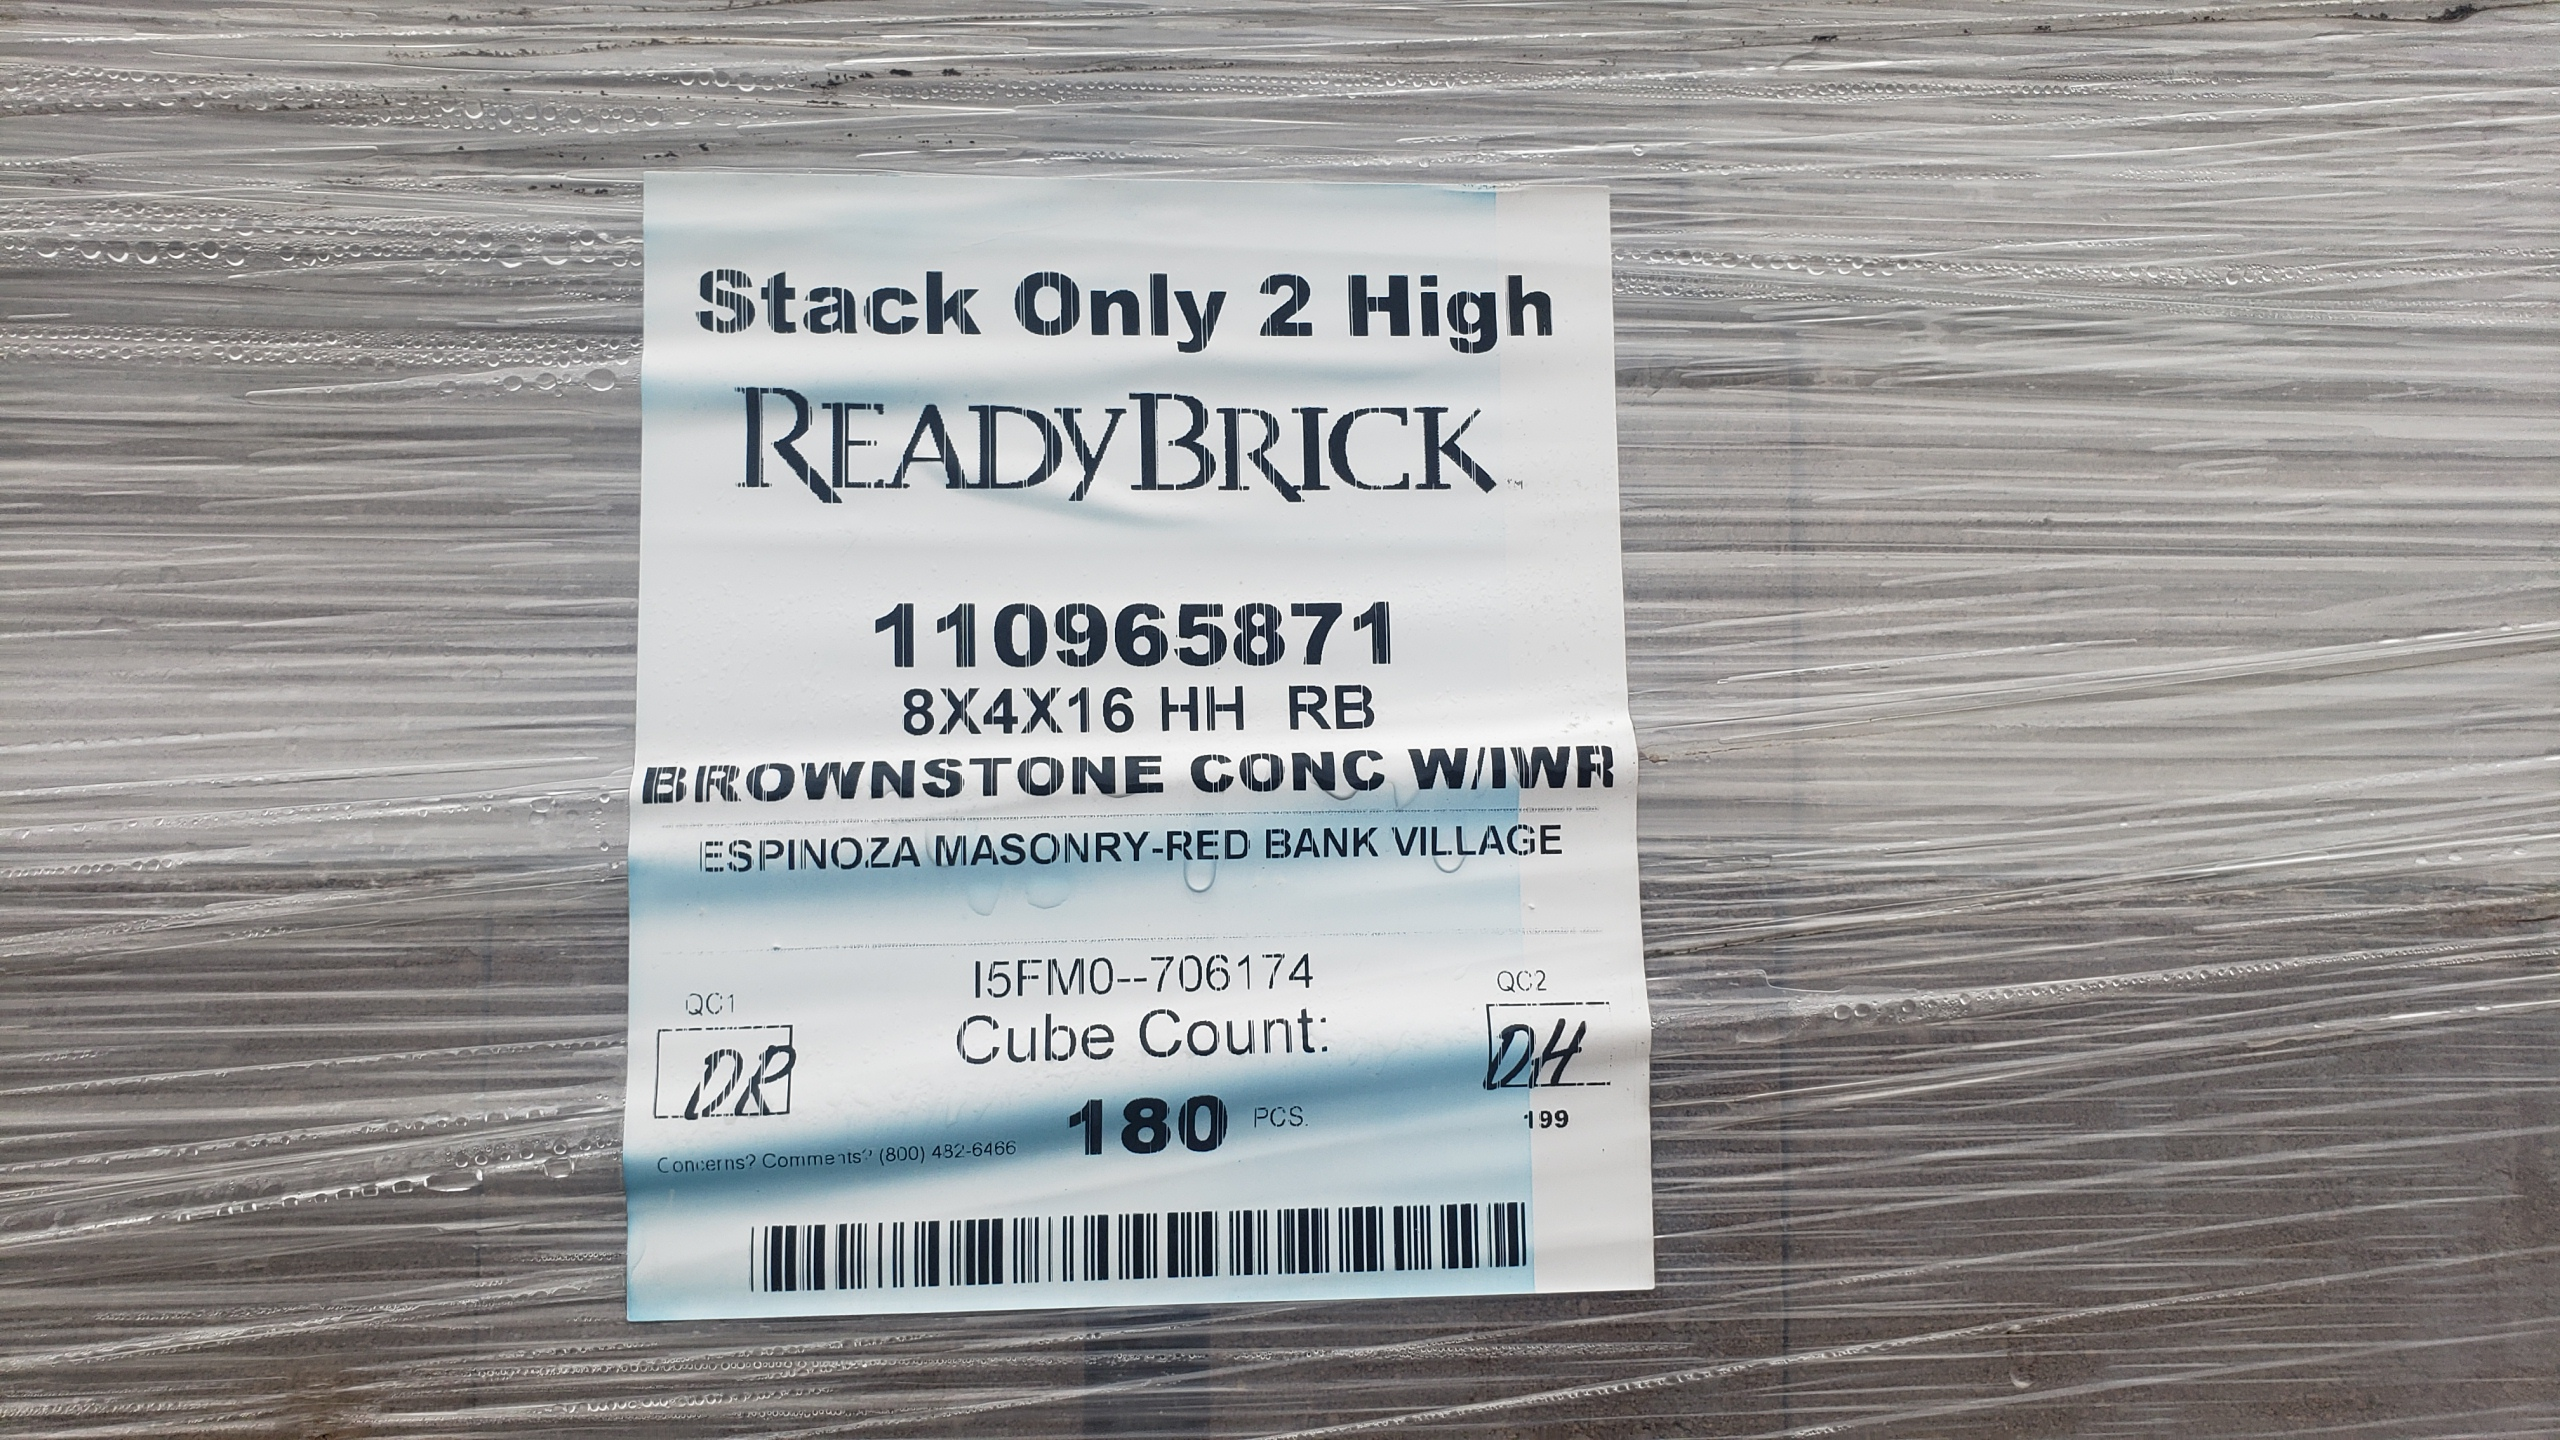 (42) Skids ReadyBrick 8x4x16 HH RB, Brownstone Conc W/IWR 180 count per skid - Image 3 of 3